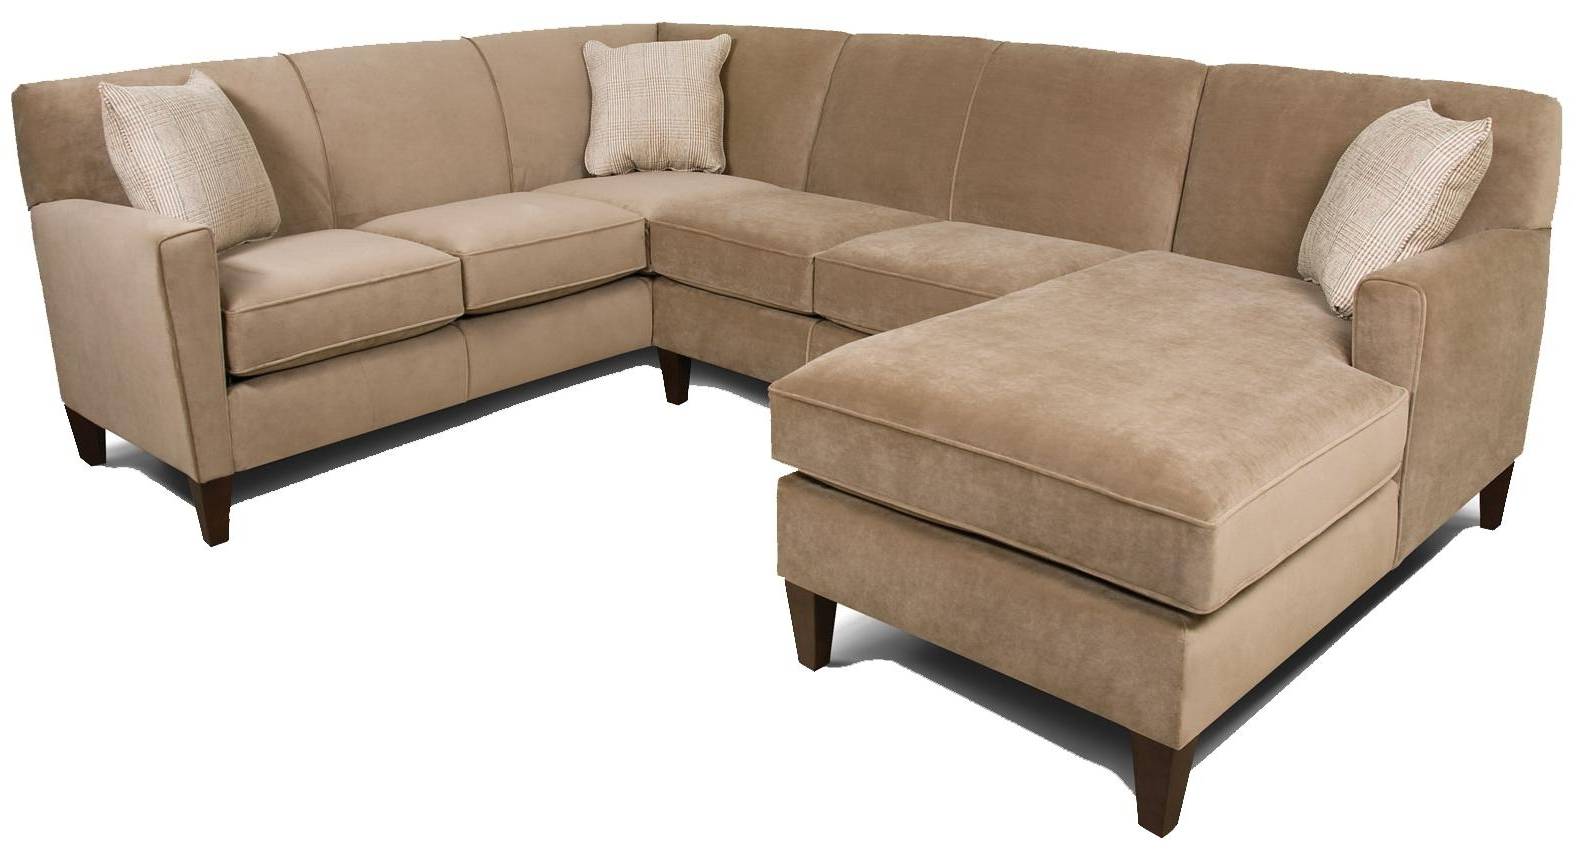 Green Bay Wi Sectional Sofas in Well-known England Collegedale Contemporary 3-Piece Sectional Sofa With Laf